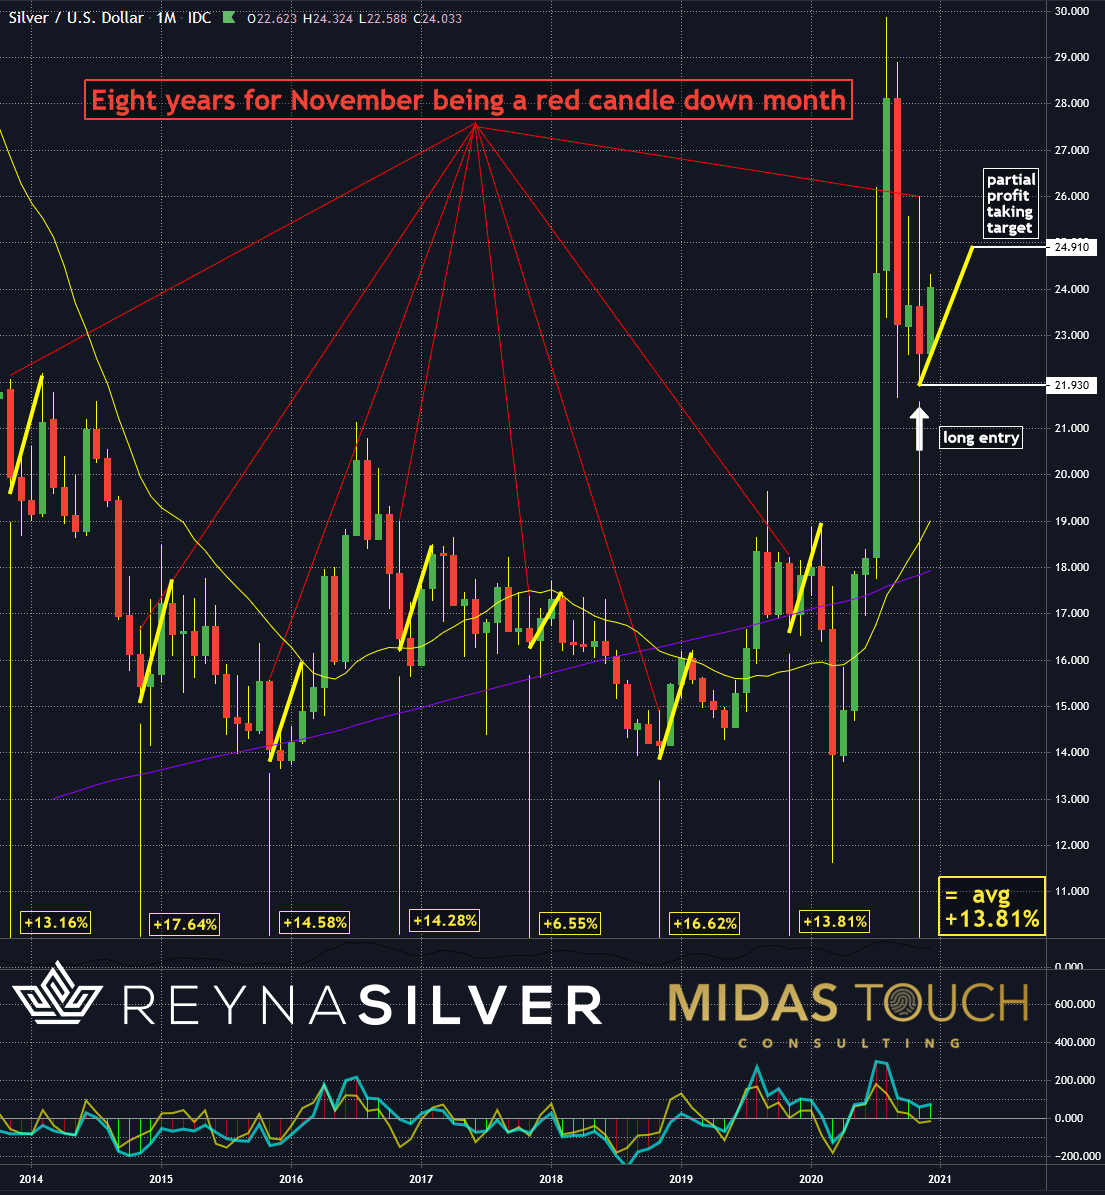 Silver in US Dollar, monthly chart as of December 3rd, 2020